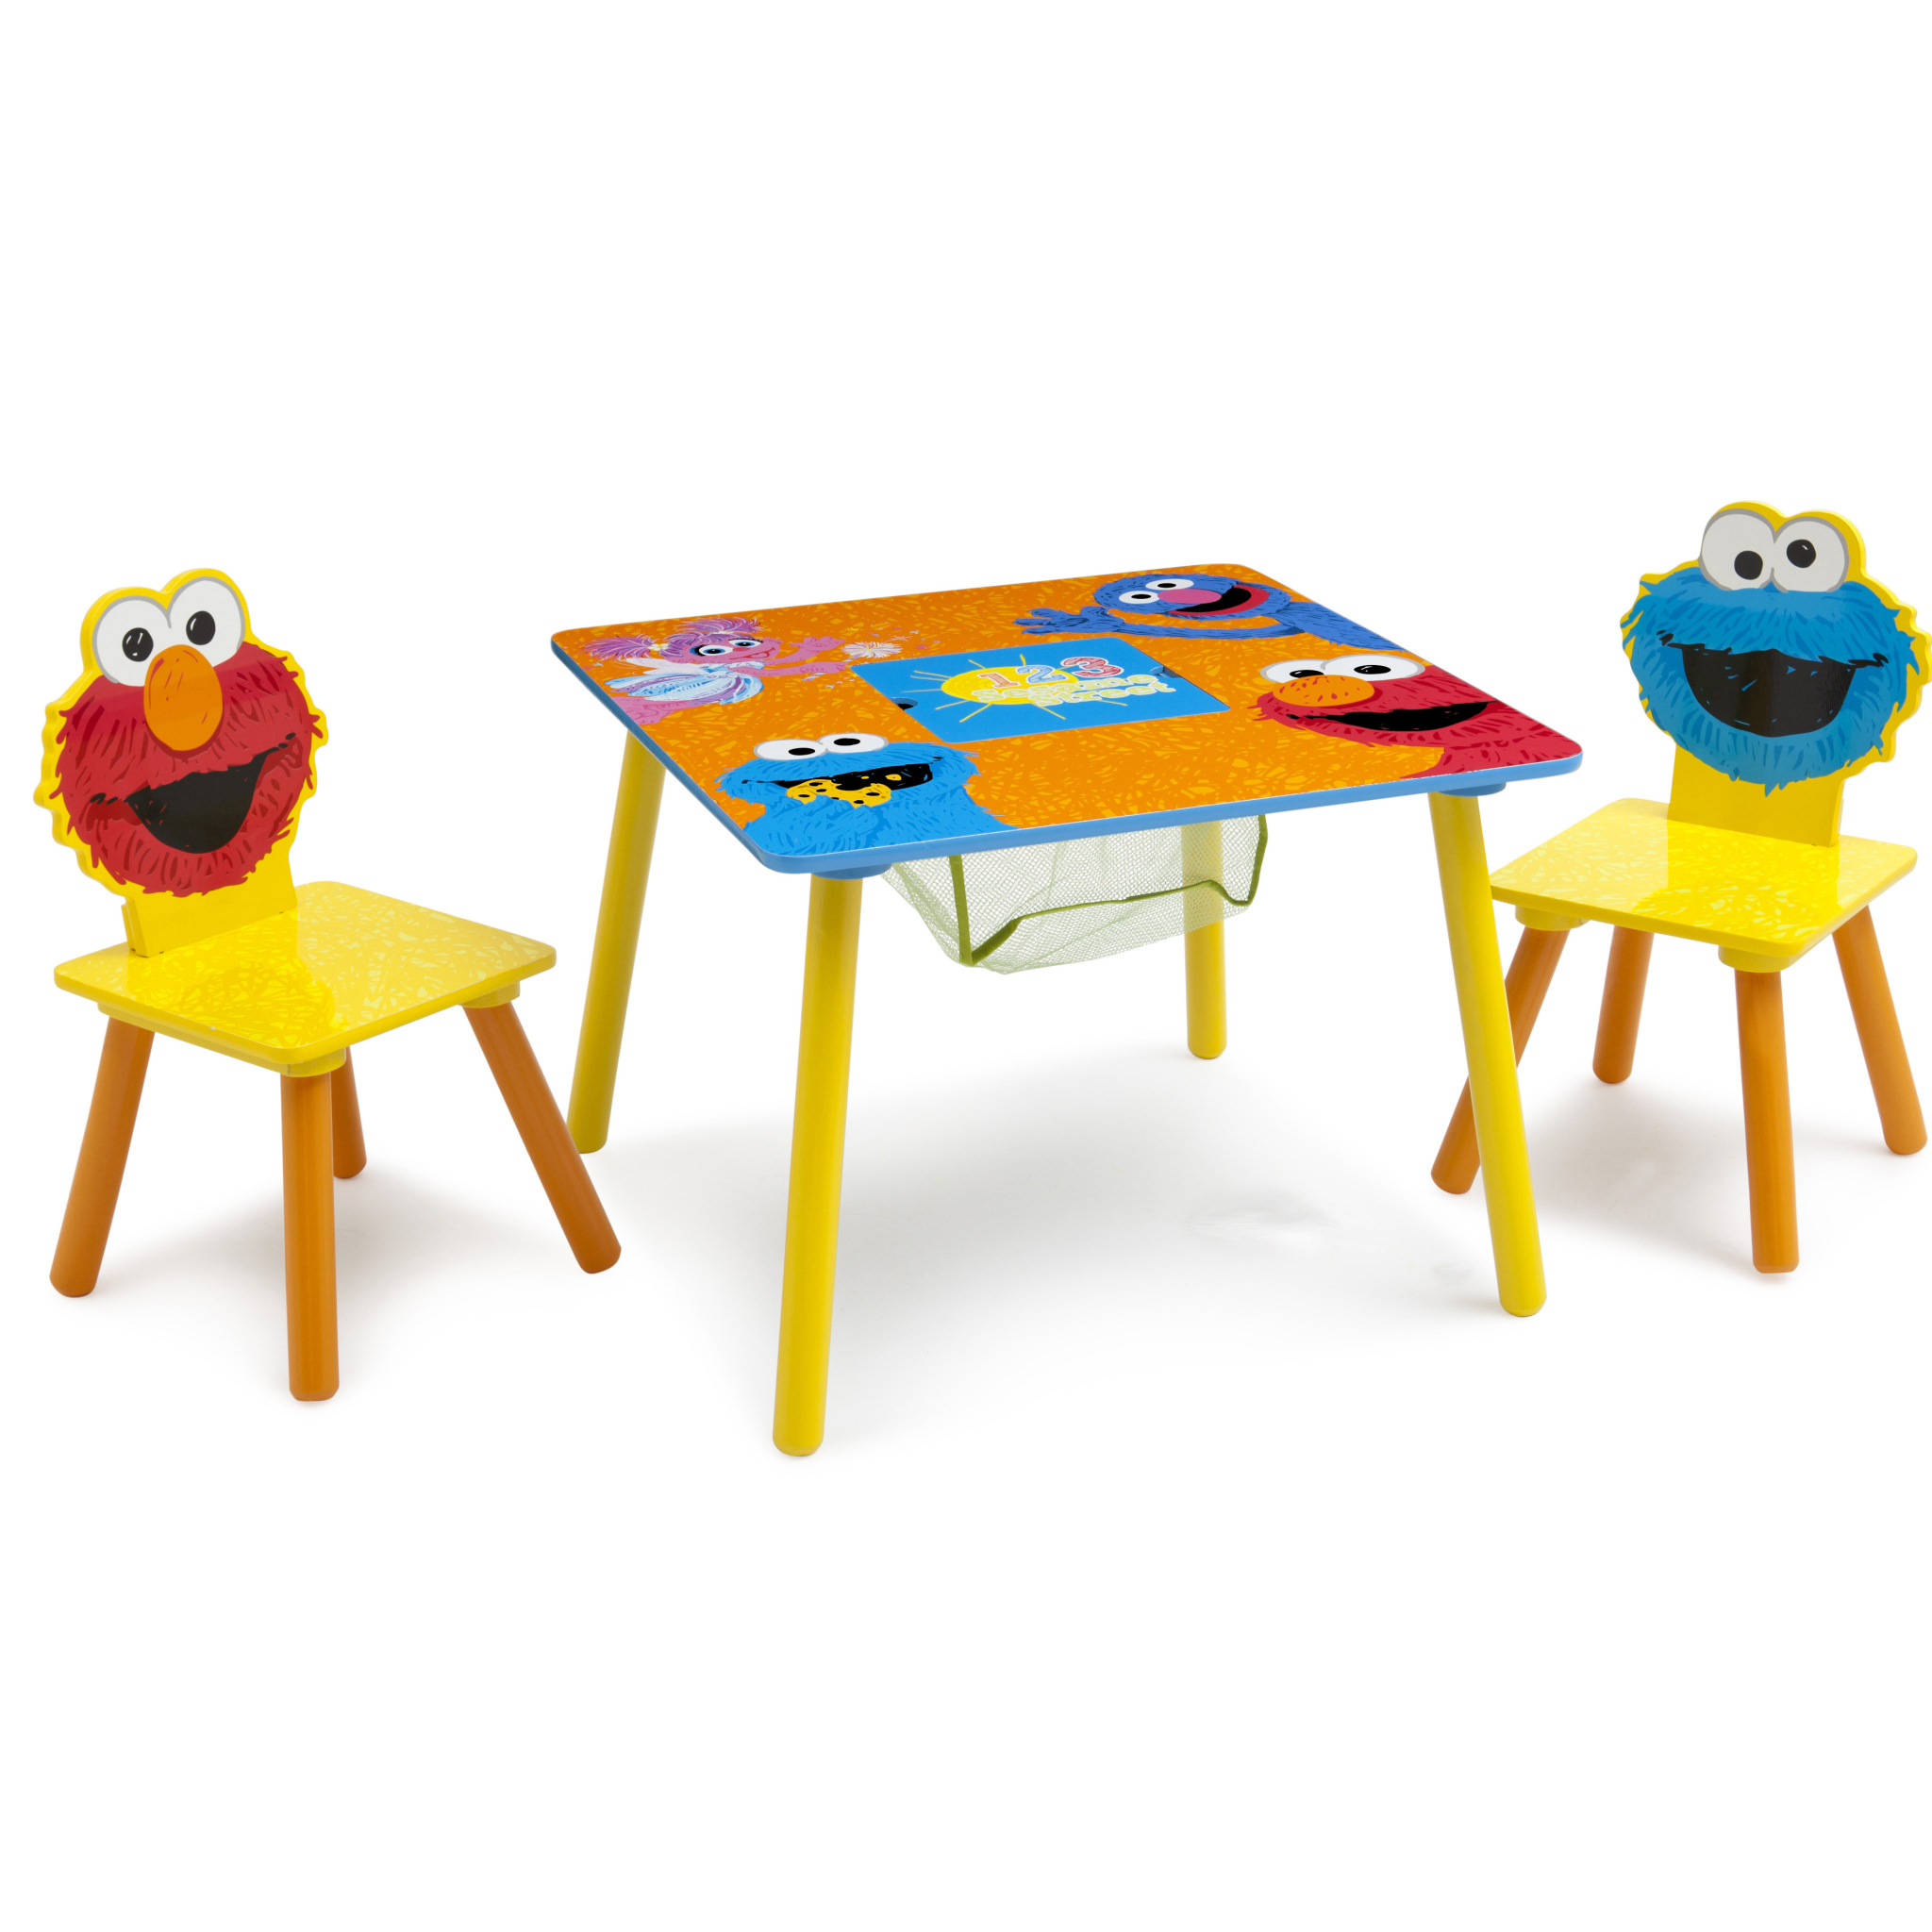 Sesame Street Toddler Table and Chair Set with Storage